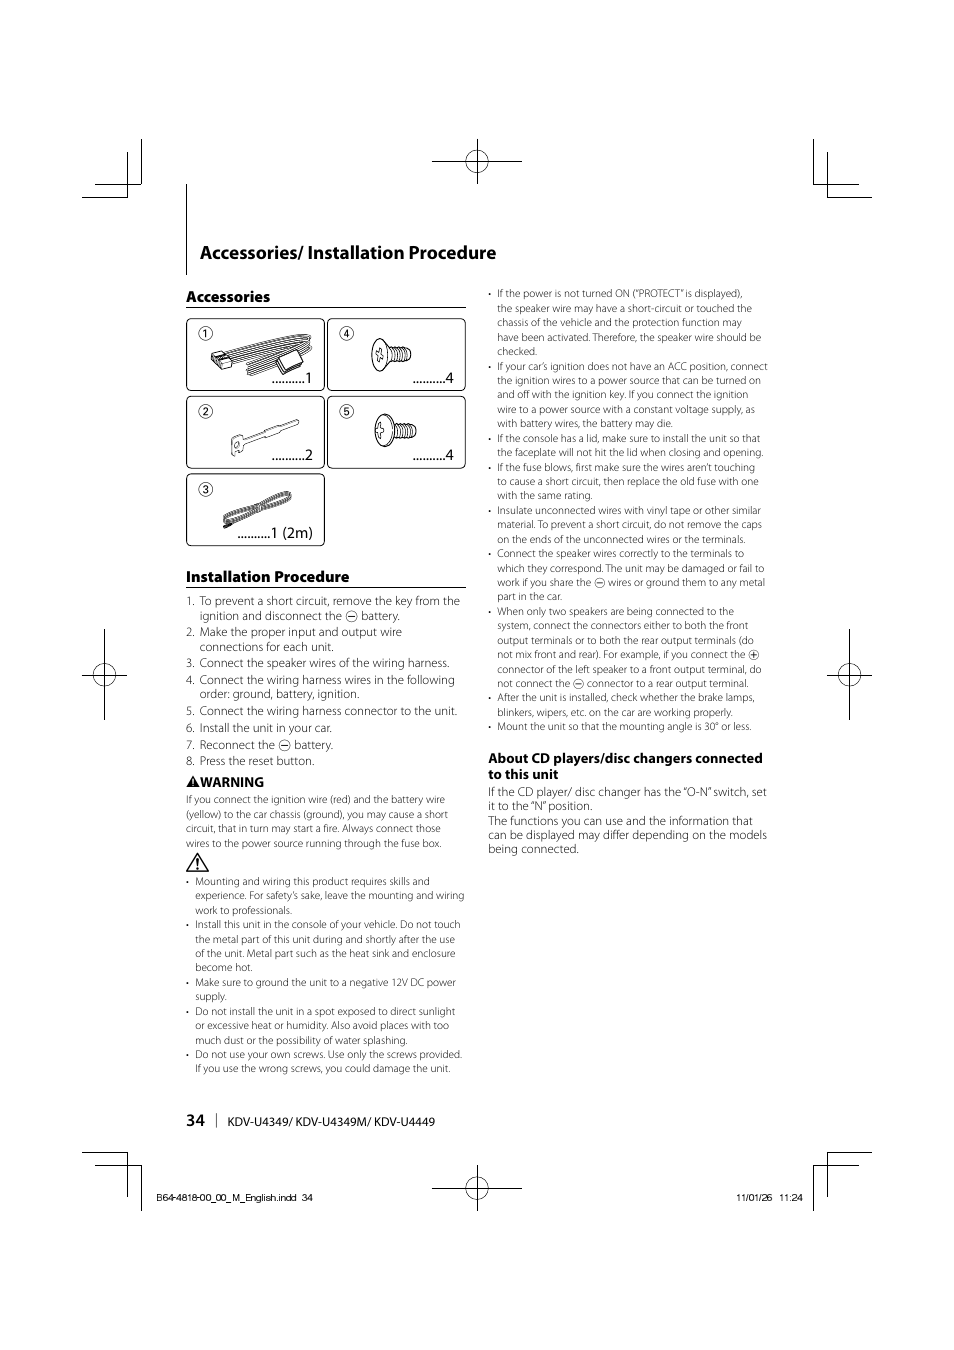 Accessories Installation Procedure Kenwood Kdv U4349 User Manual Cd Player Wiring Harness Page 34 40